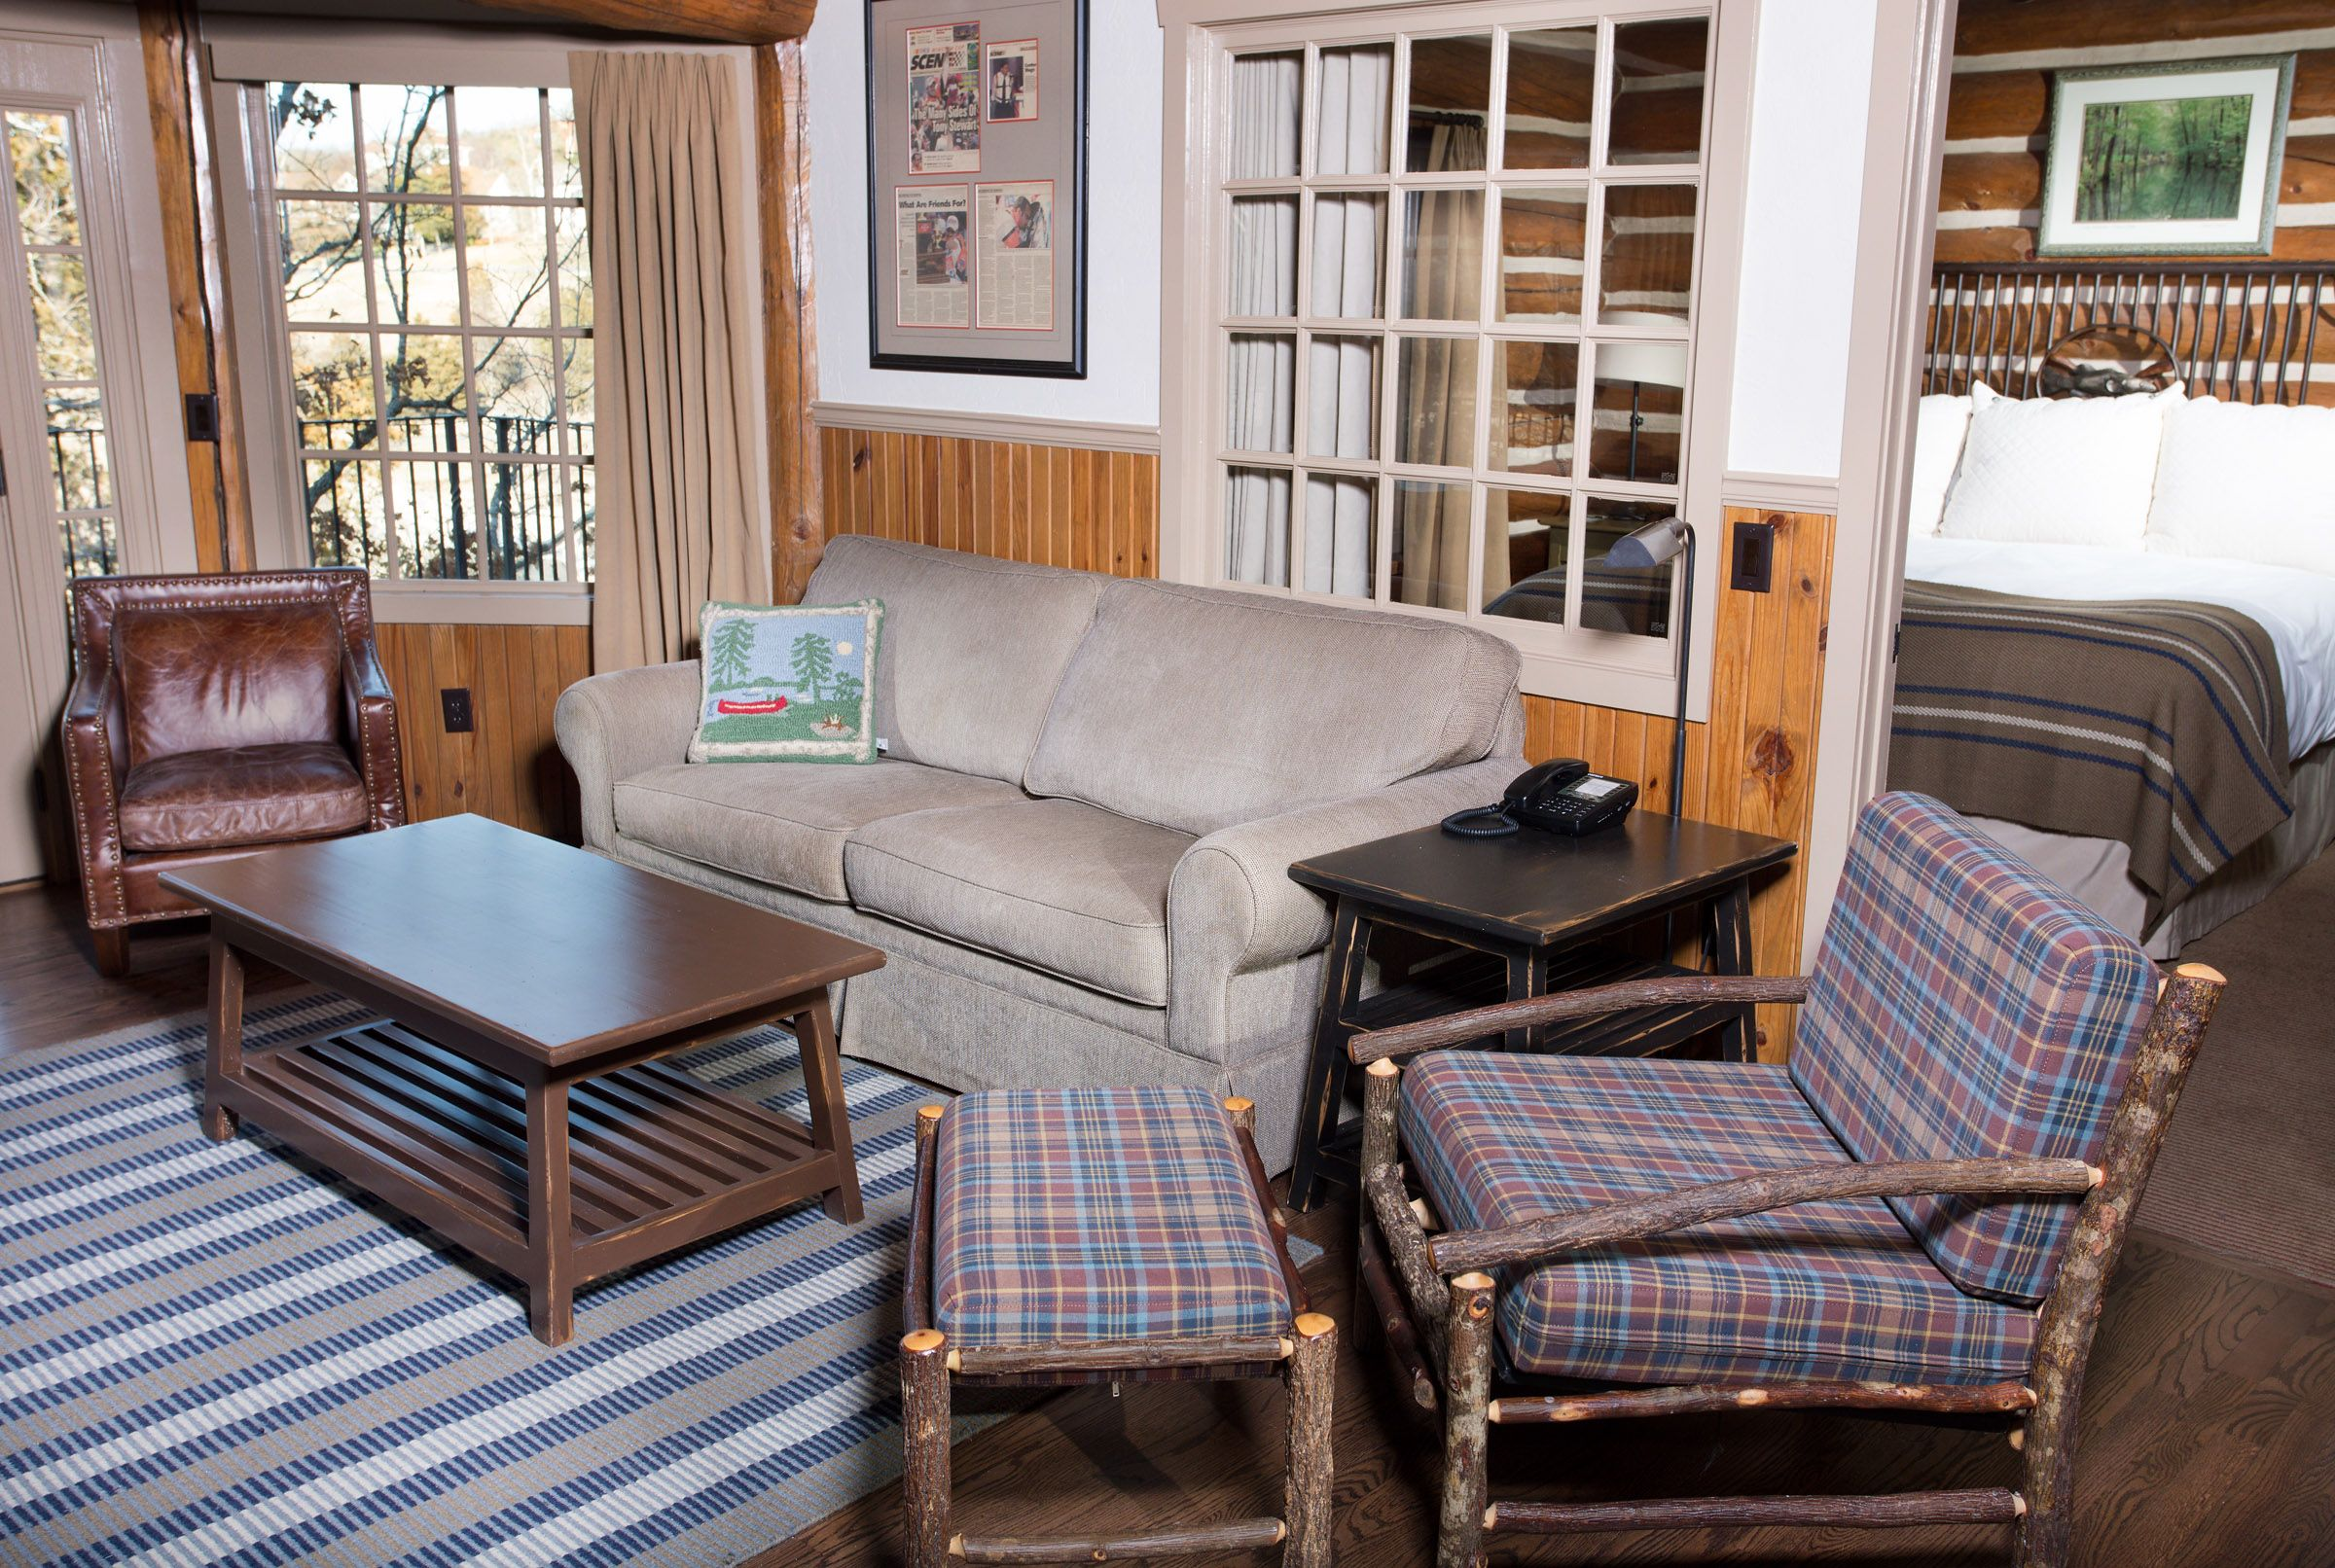 Big Cedar Lodge Near Branson, MO Boasts 246 Plush, Well Appointed  Accommodations, Which Include Lodges, Cozy Cottages And Private Log Cabins.